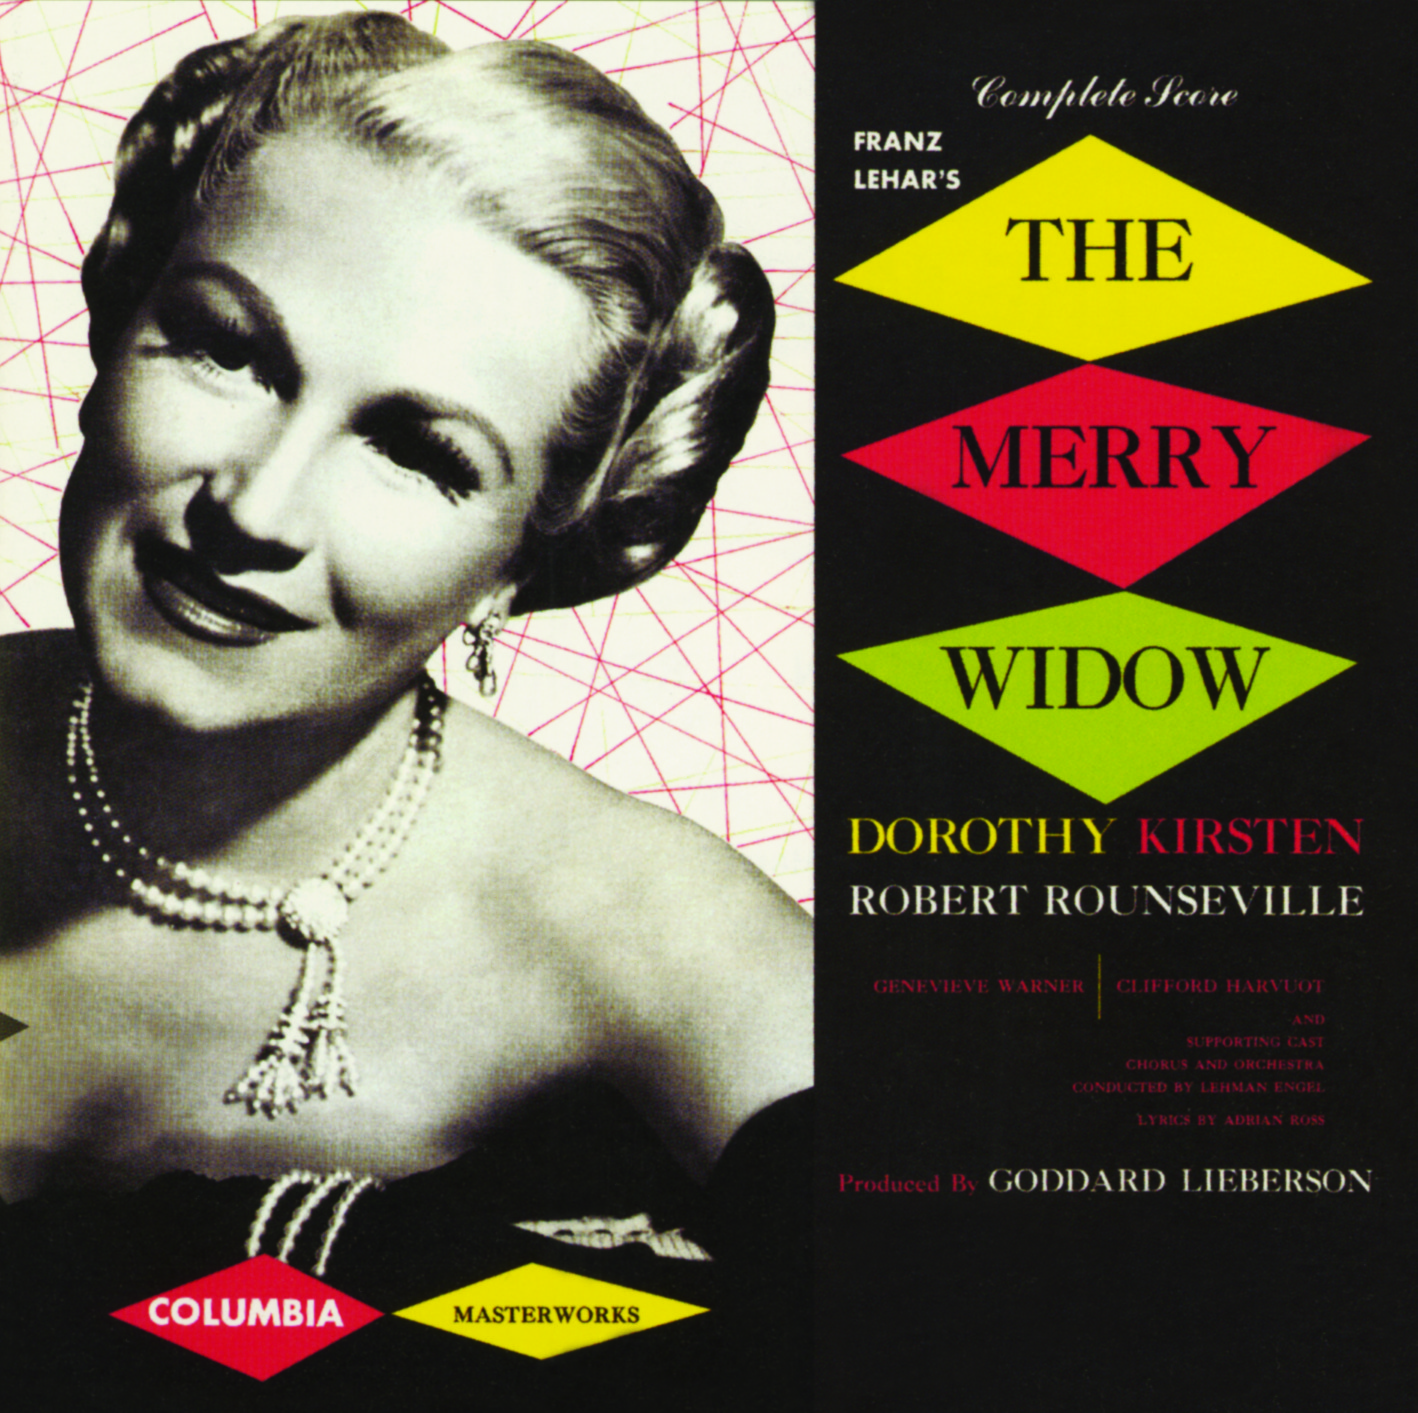 The merry widow 1952 online dating. what username should i use for a dating site.